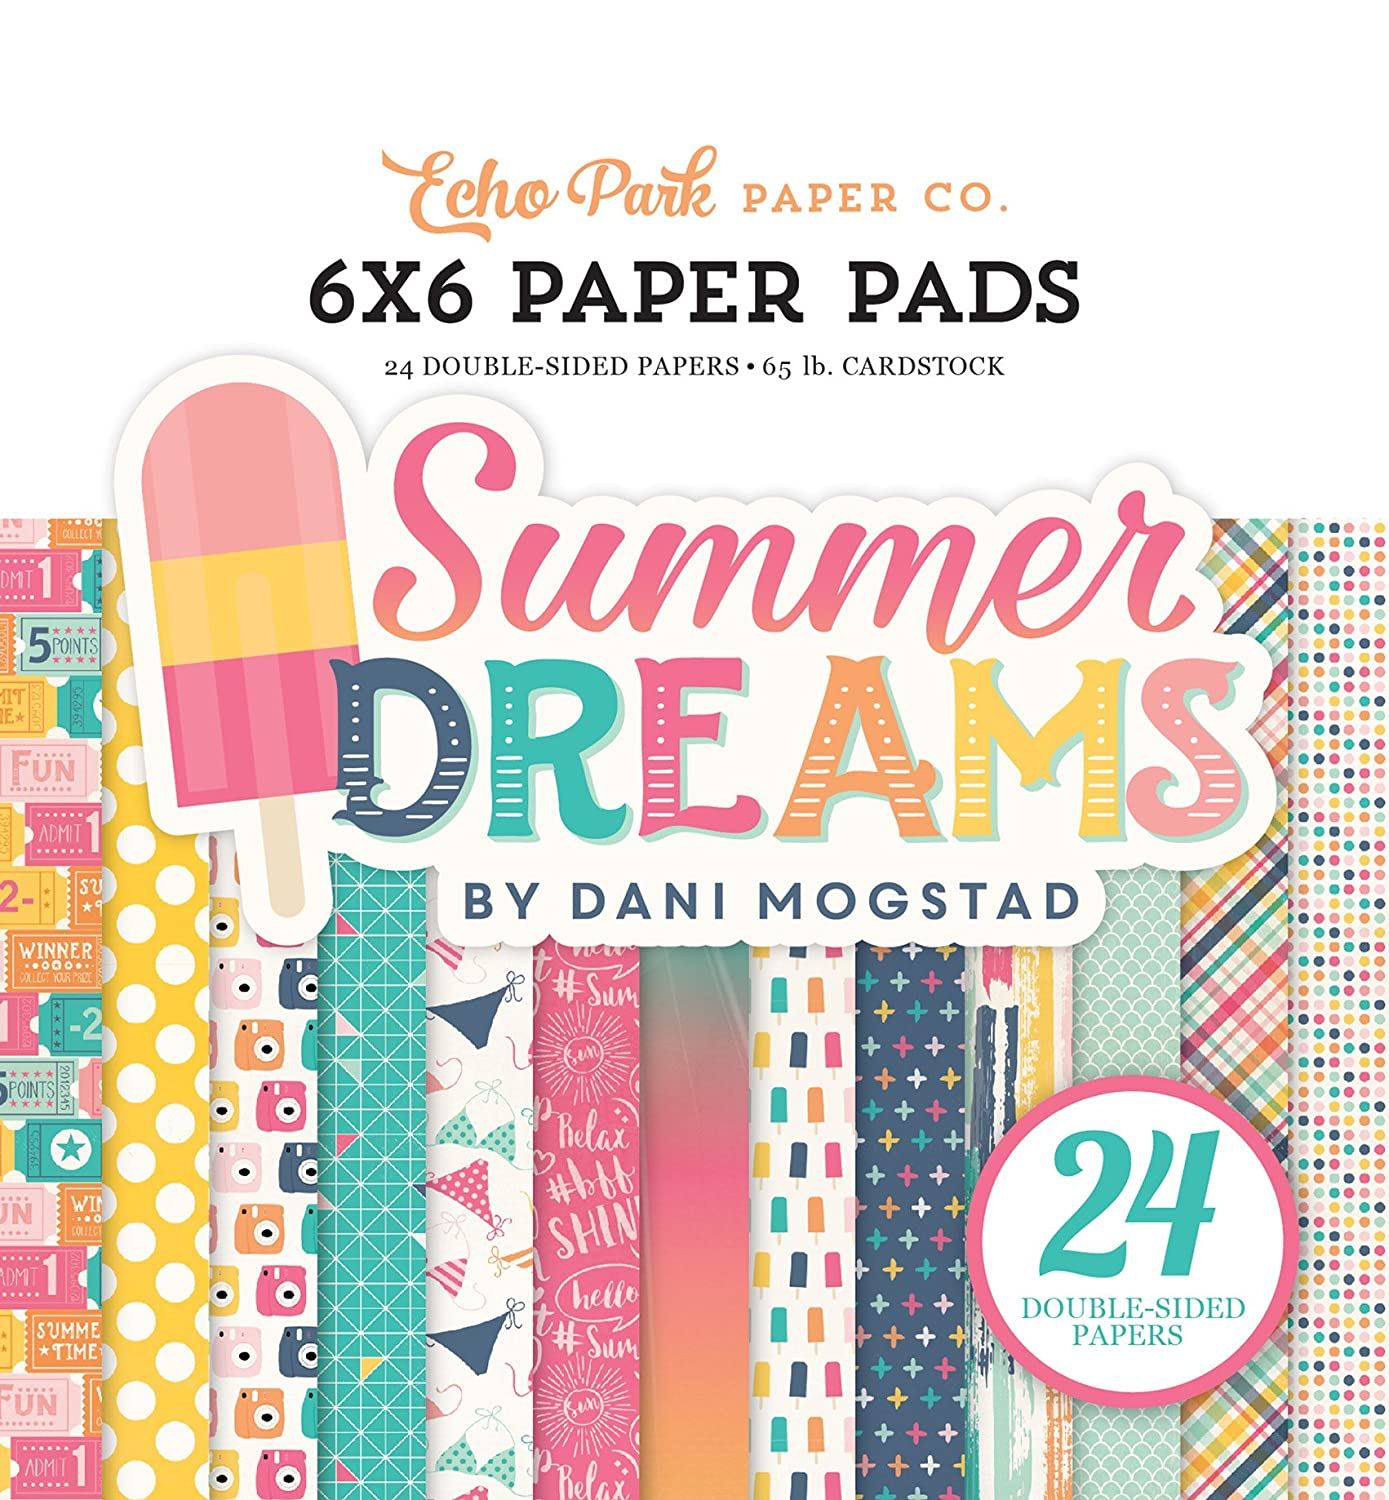 Echo Park Paper Company Sweet Summertime Paper Pad, 6 x 6